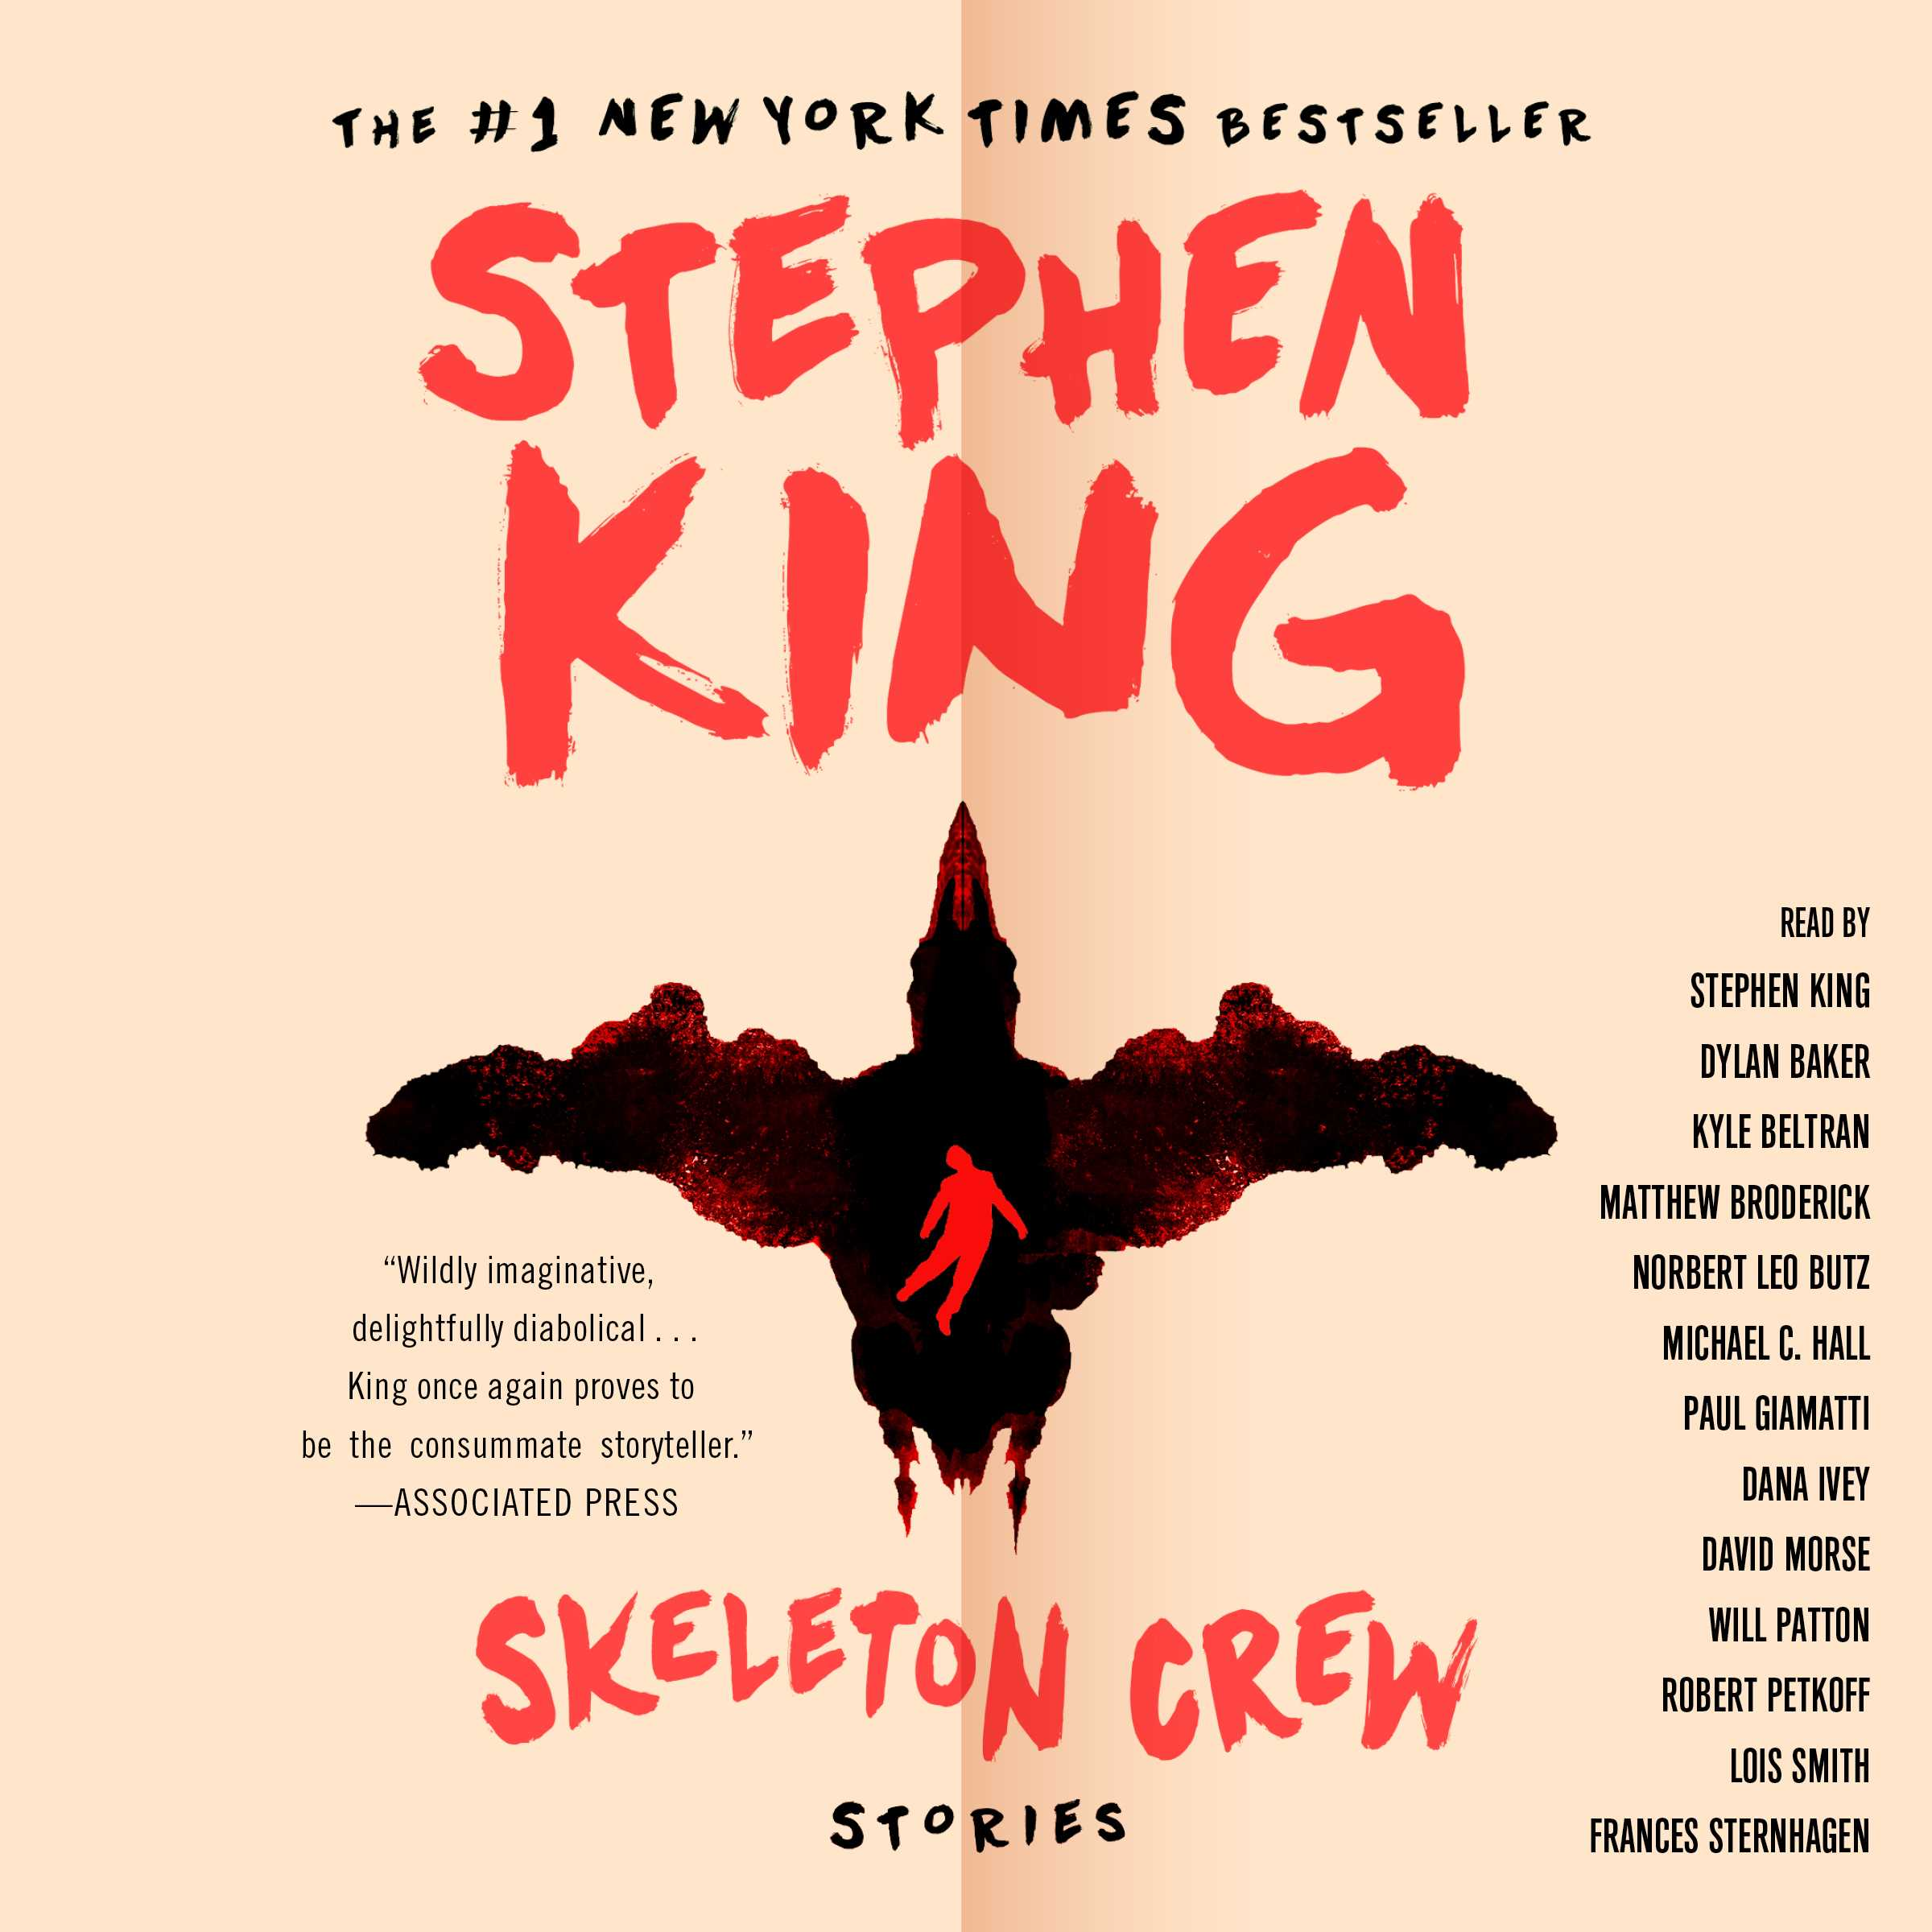 Skeleton crew 9781508218401 hr